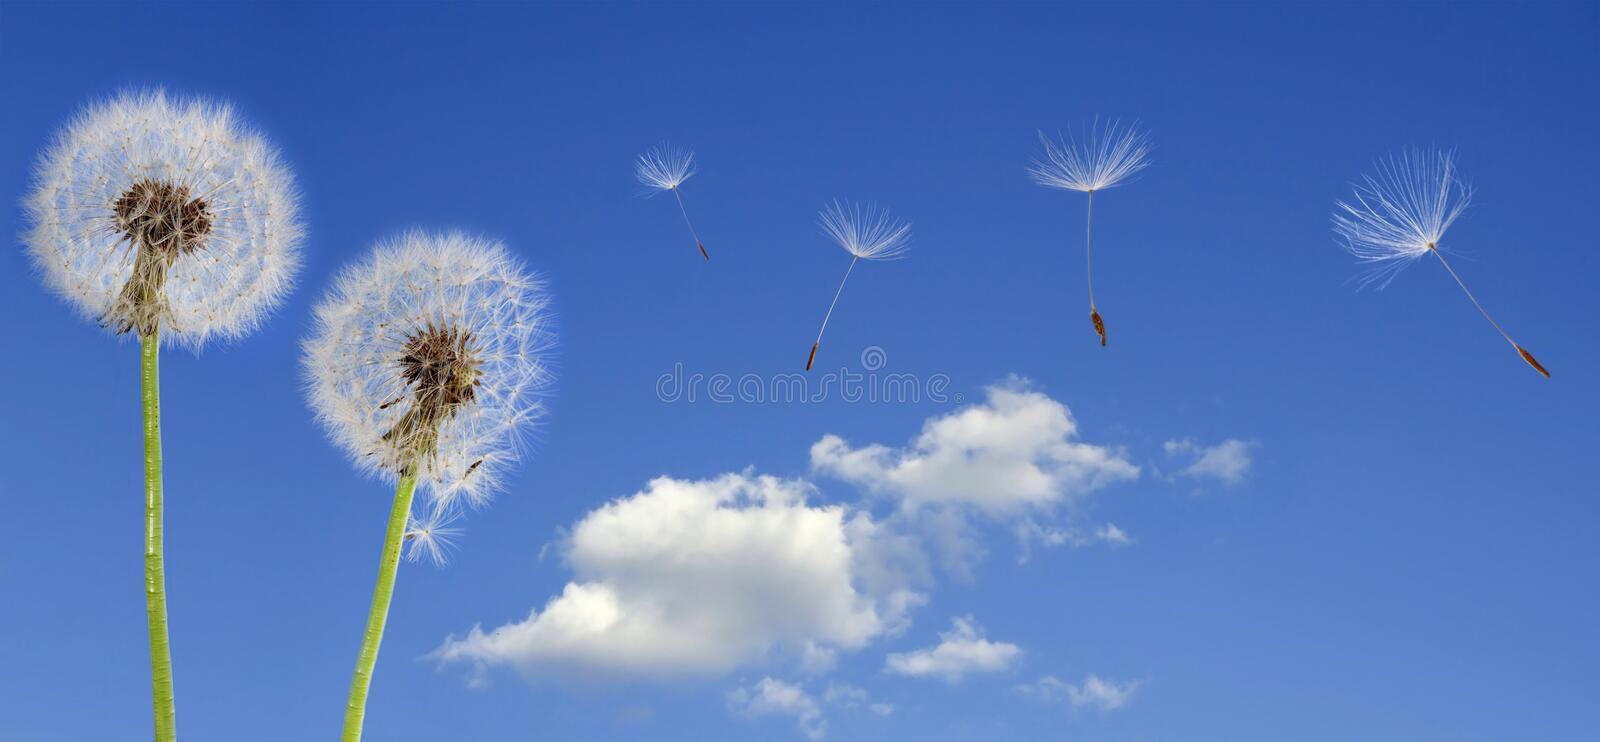 Dandelions on blue sky royalty free stock photography